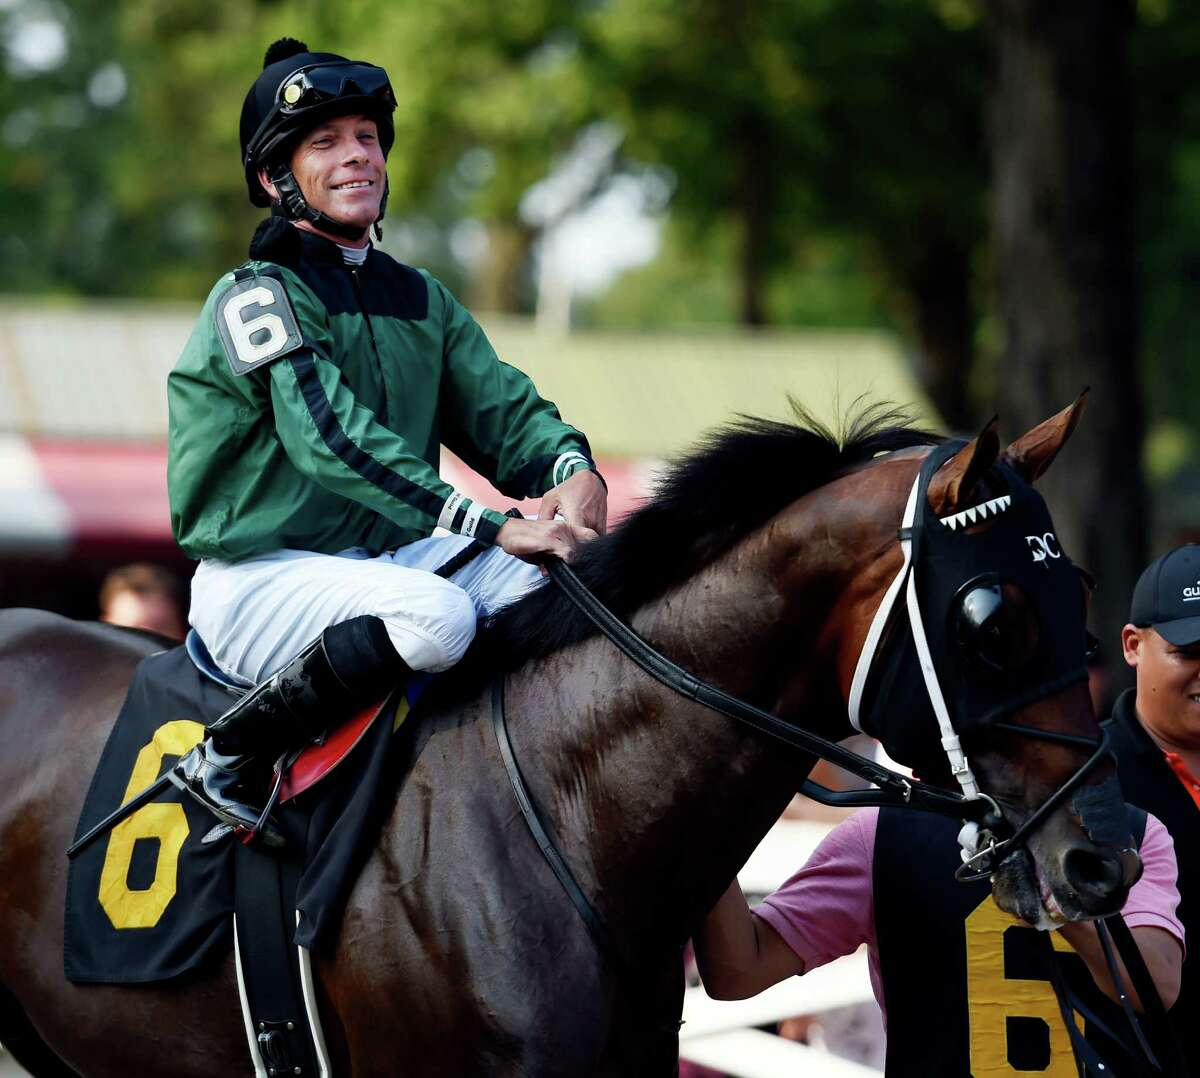 Jockey Mike Luzzi is all smiles as he makes his first start, since he sustained serious injuries when a horse fell on him at Aqueduct in November of 2014, Wednesday afternoon Sept. 2, 2015 at the Saratoga Race Course in Saratoga Springs, N.Y. (Skip Dickstein/Times Union)